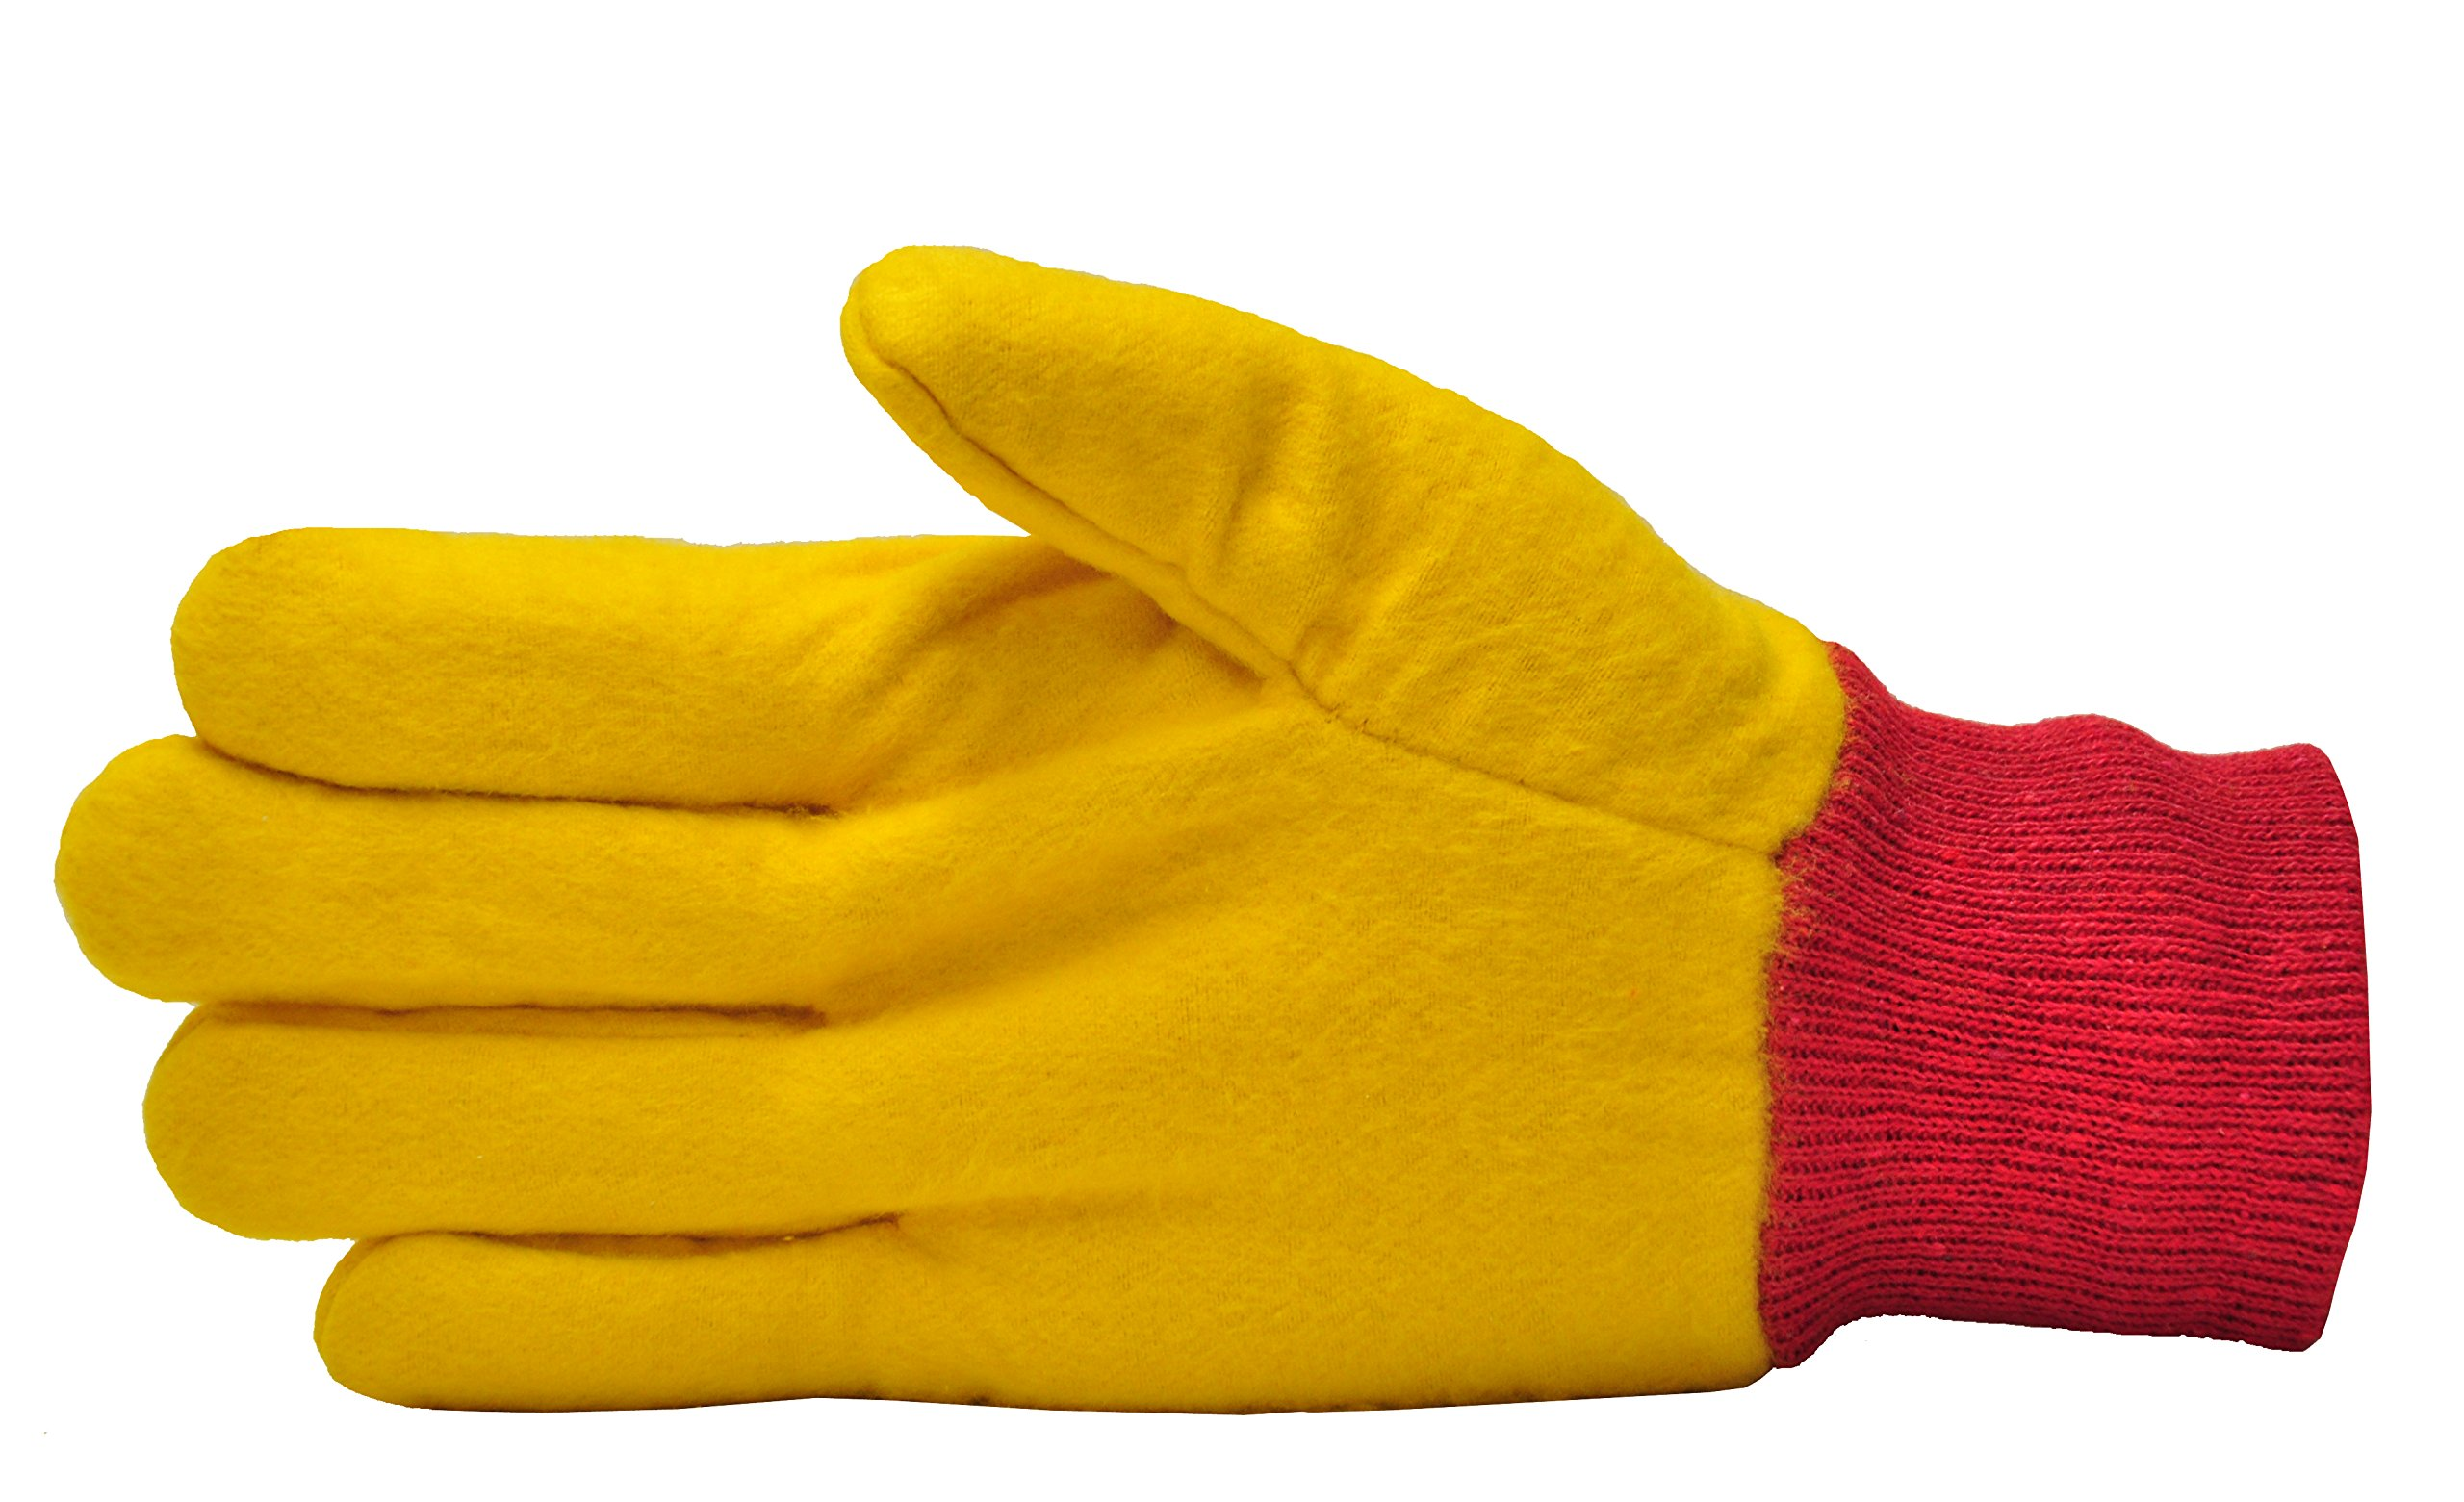 GF Gloves 5414-144 Heavyweight Chore Gloves, Double Layer, Large, Yellow (Pack of 144)